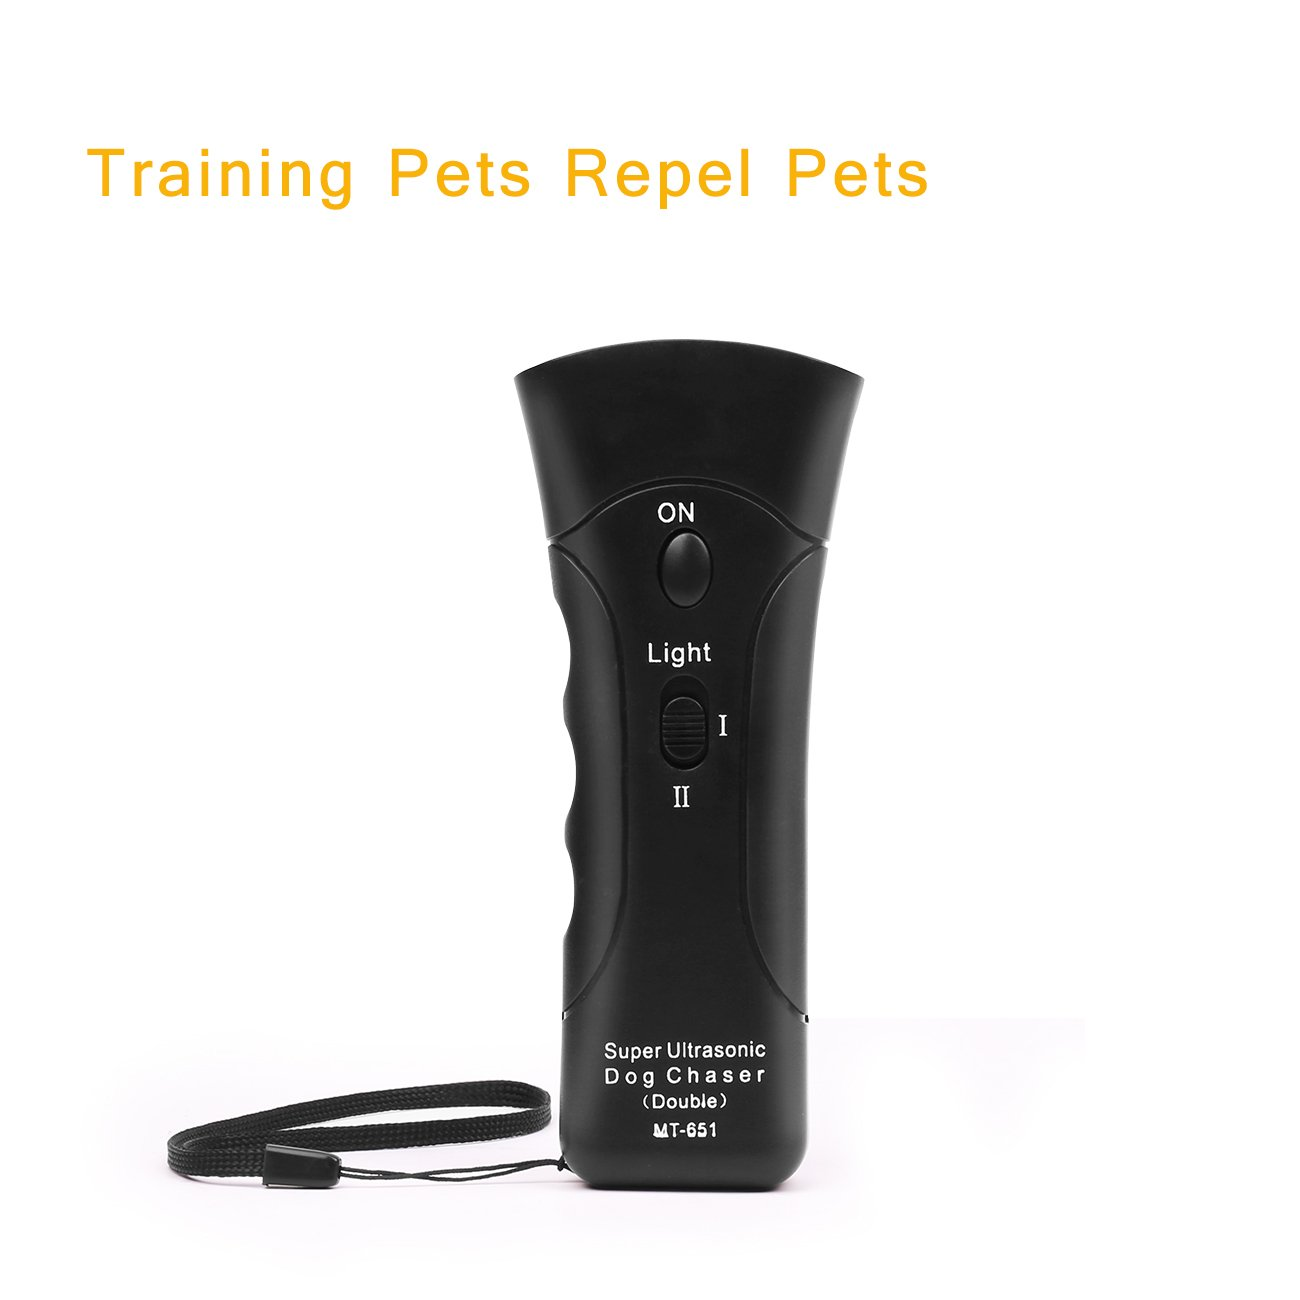 Handheld Dog Repellent, Dual Channel Electronic Animal Repellent, Handy Ultrasonic Dog Training Pet Bark Stopper for Outdoor Camping Garden by Meter.llc (Image #6)